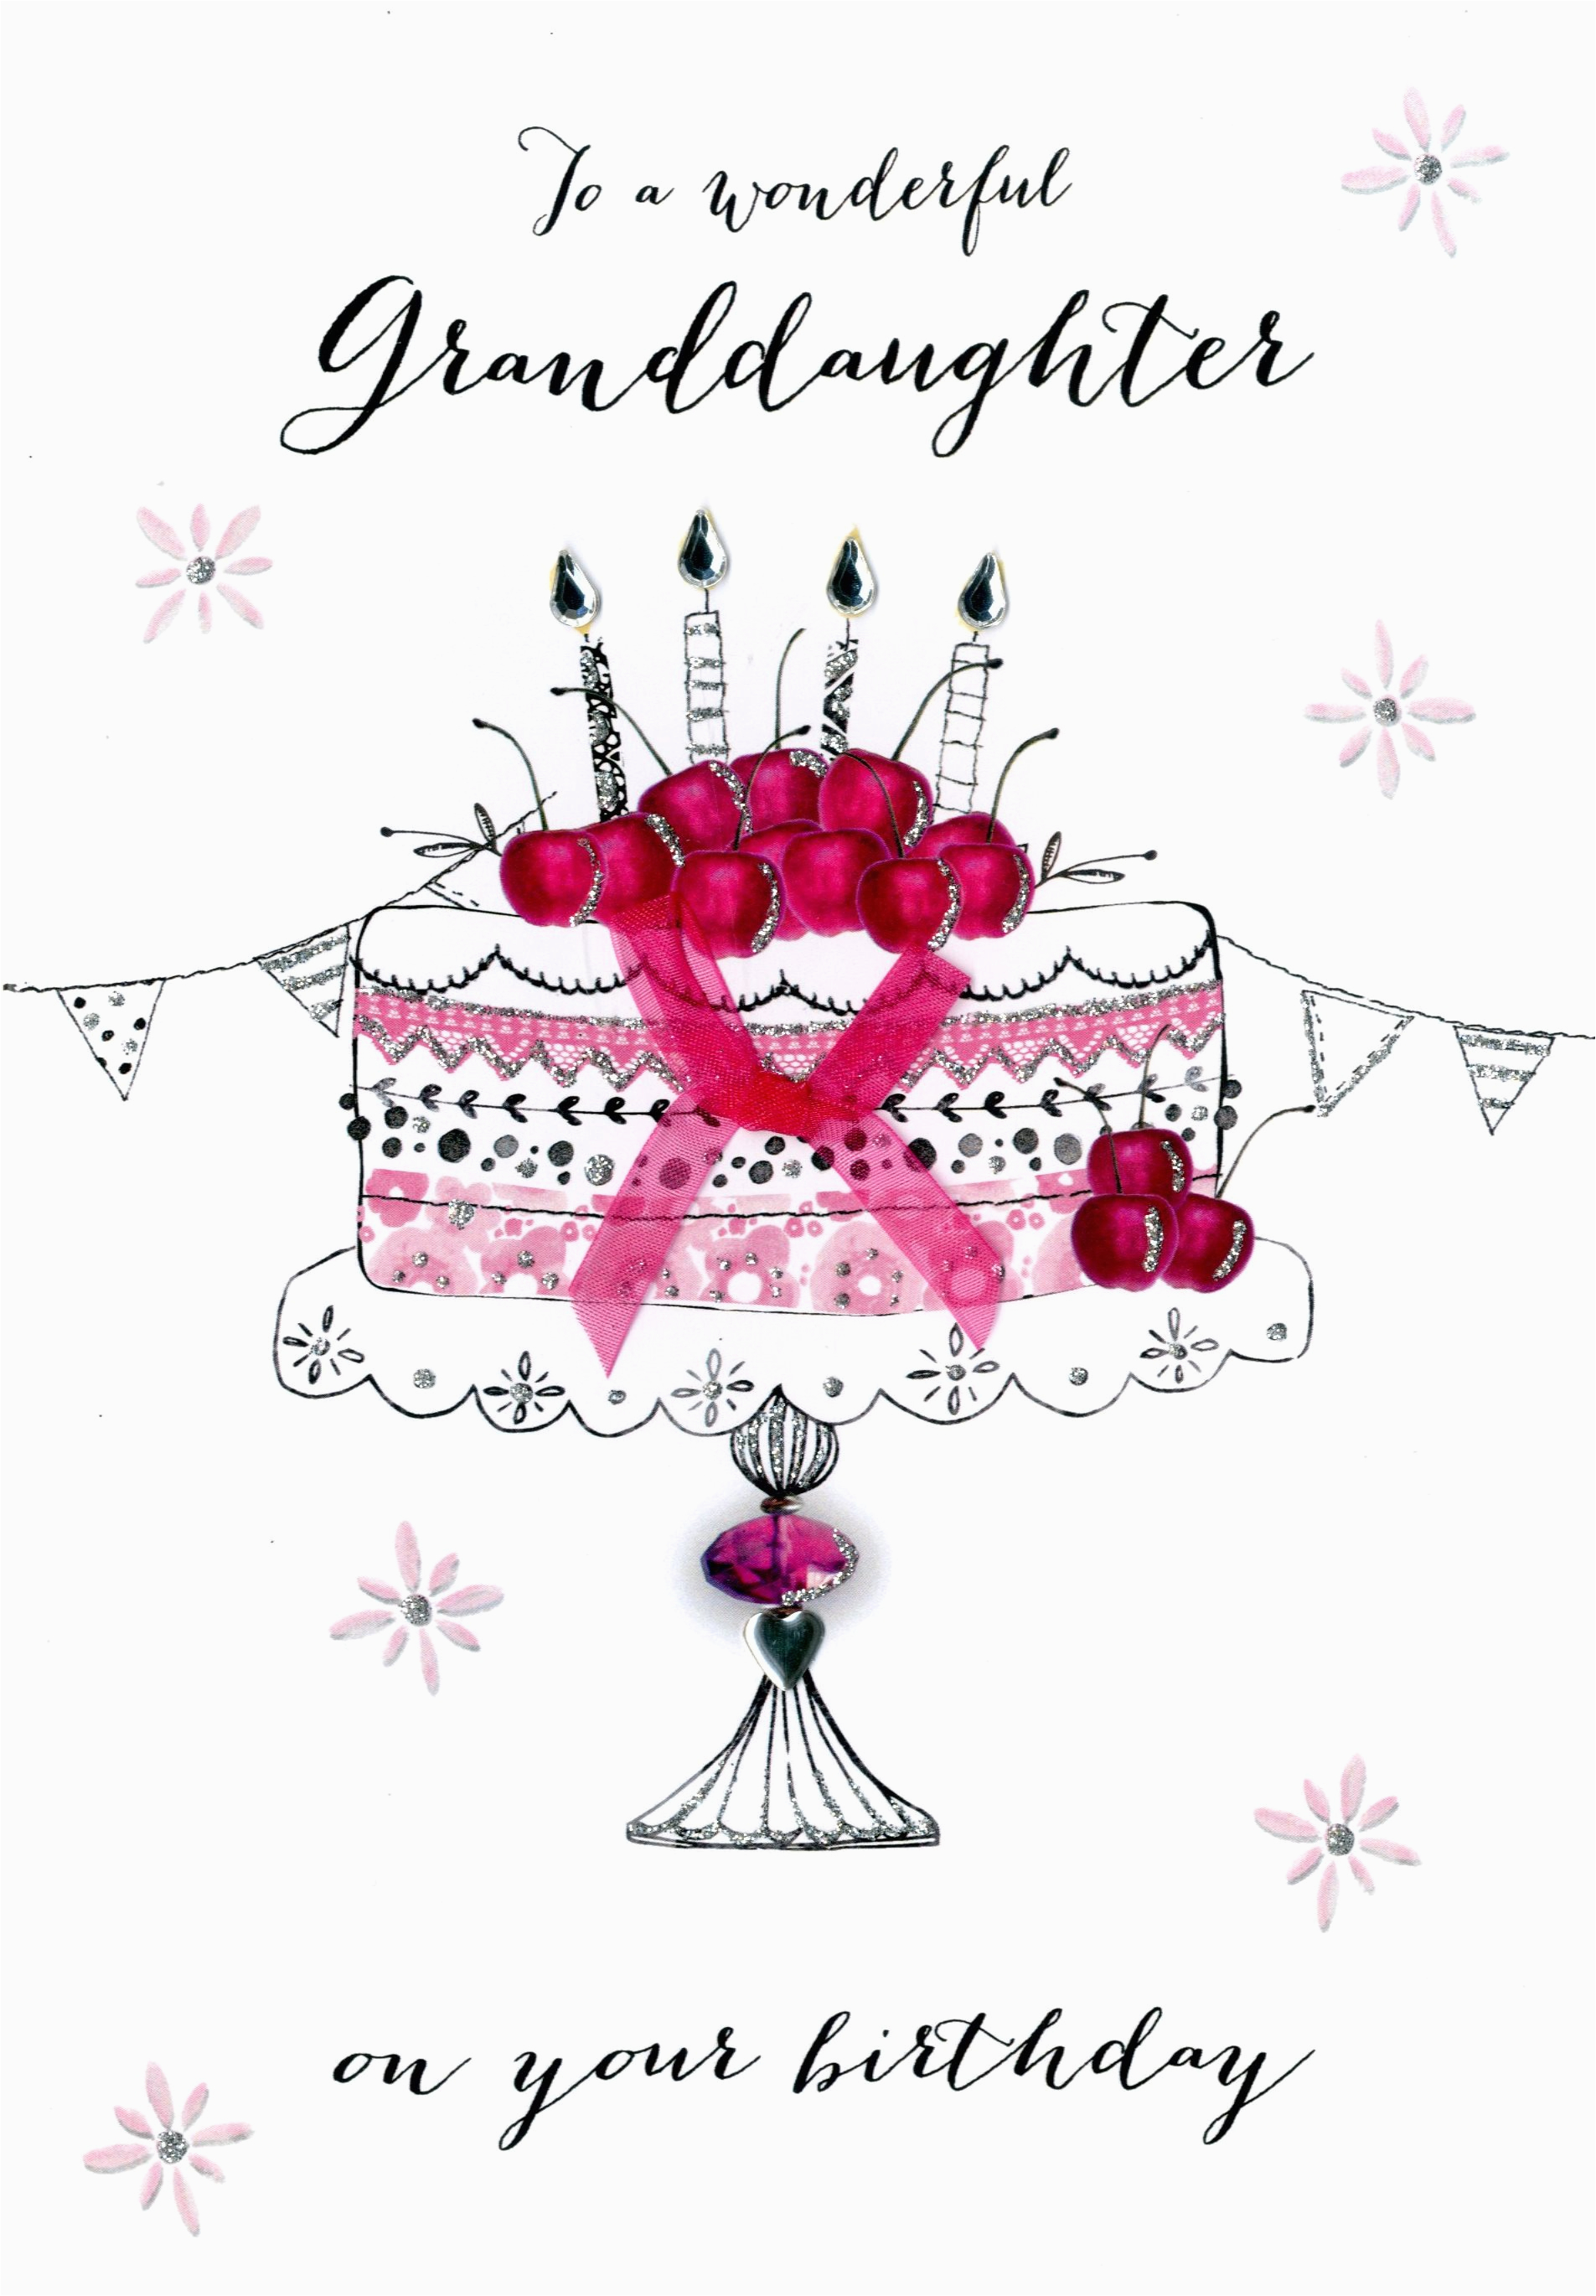 Birthday Cards for Granddaughters Wonderul Granddaughter Birthday Embellished Greeting Card